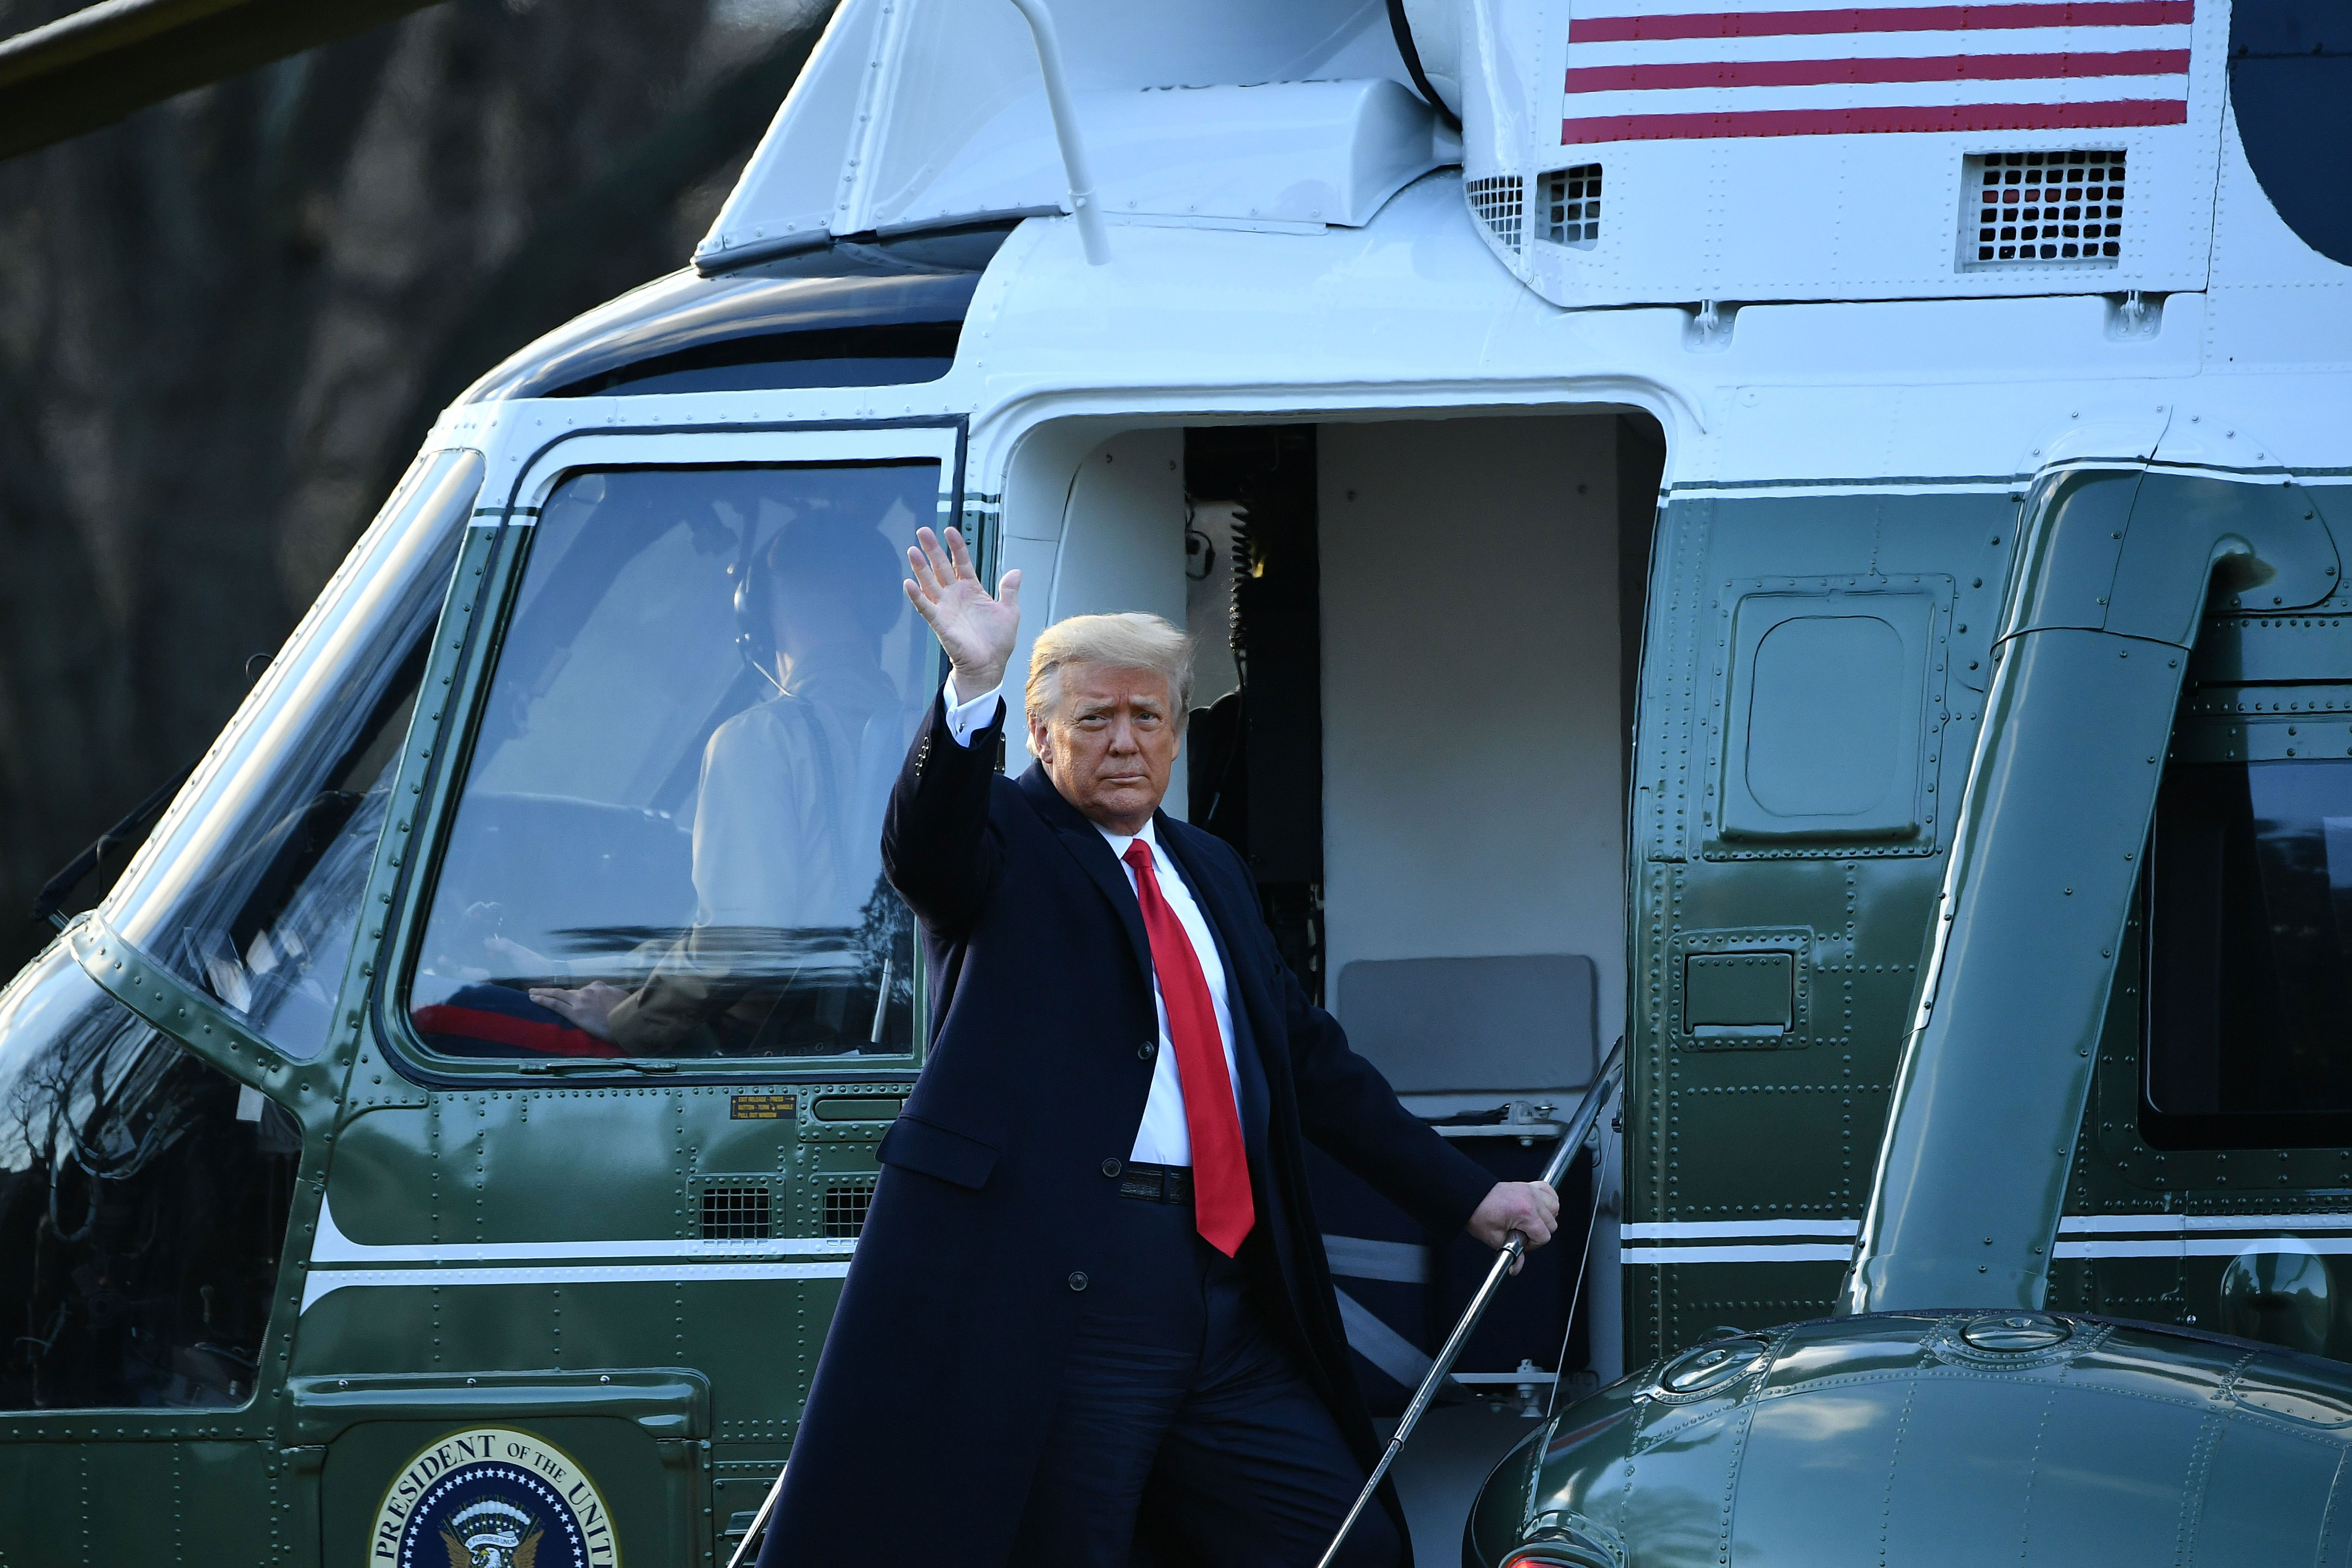 President Donald Trump waves as he boards Marine One at the White House on January 20.